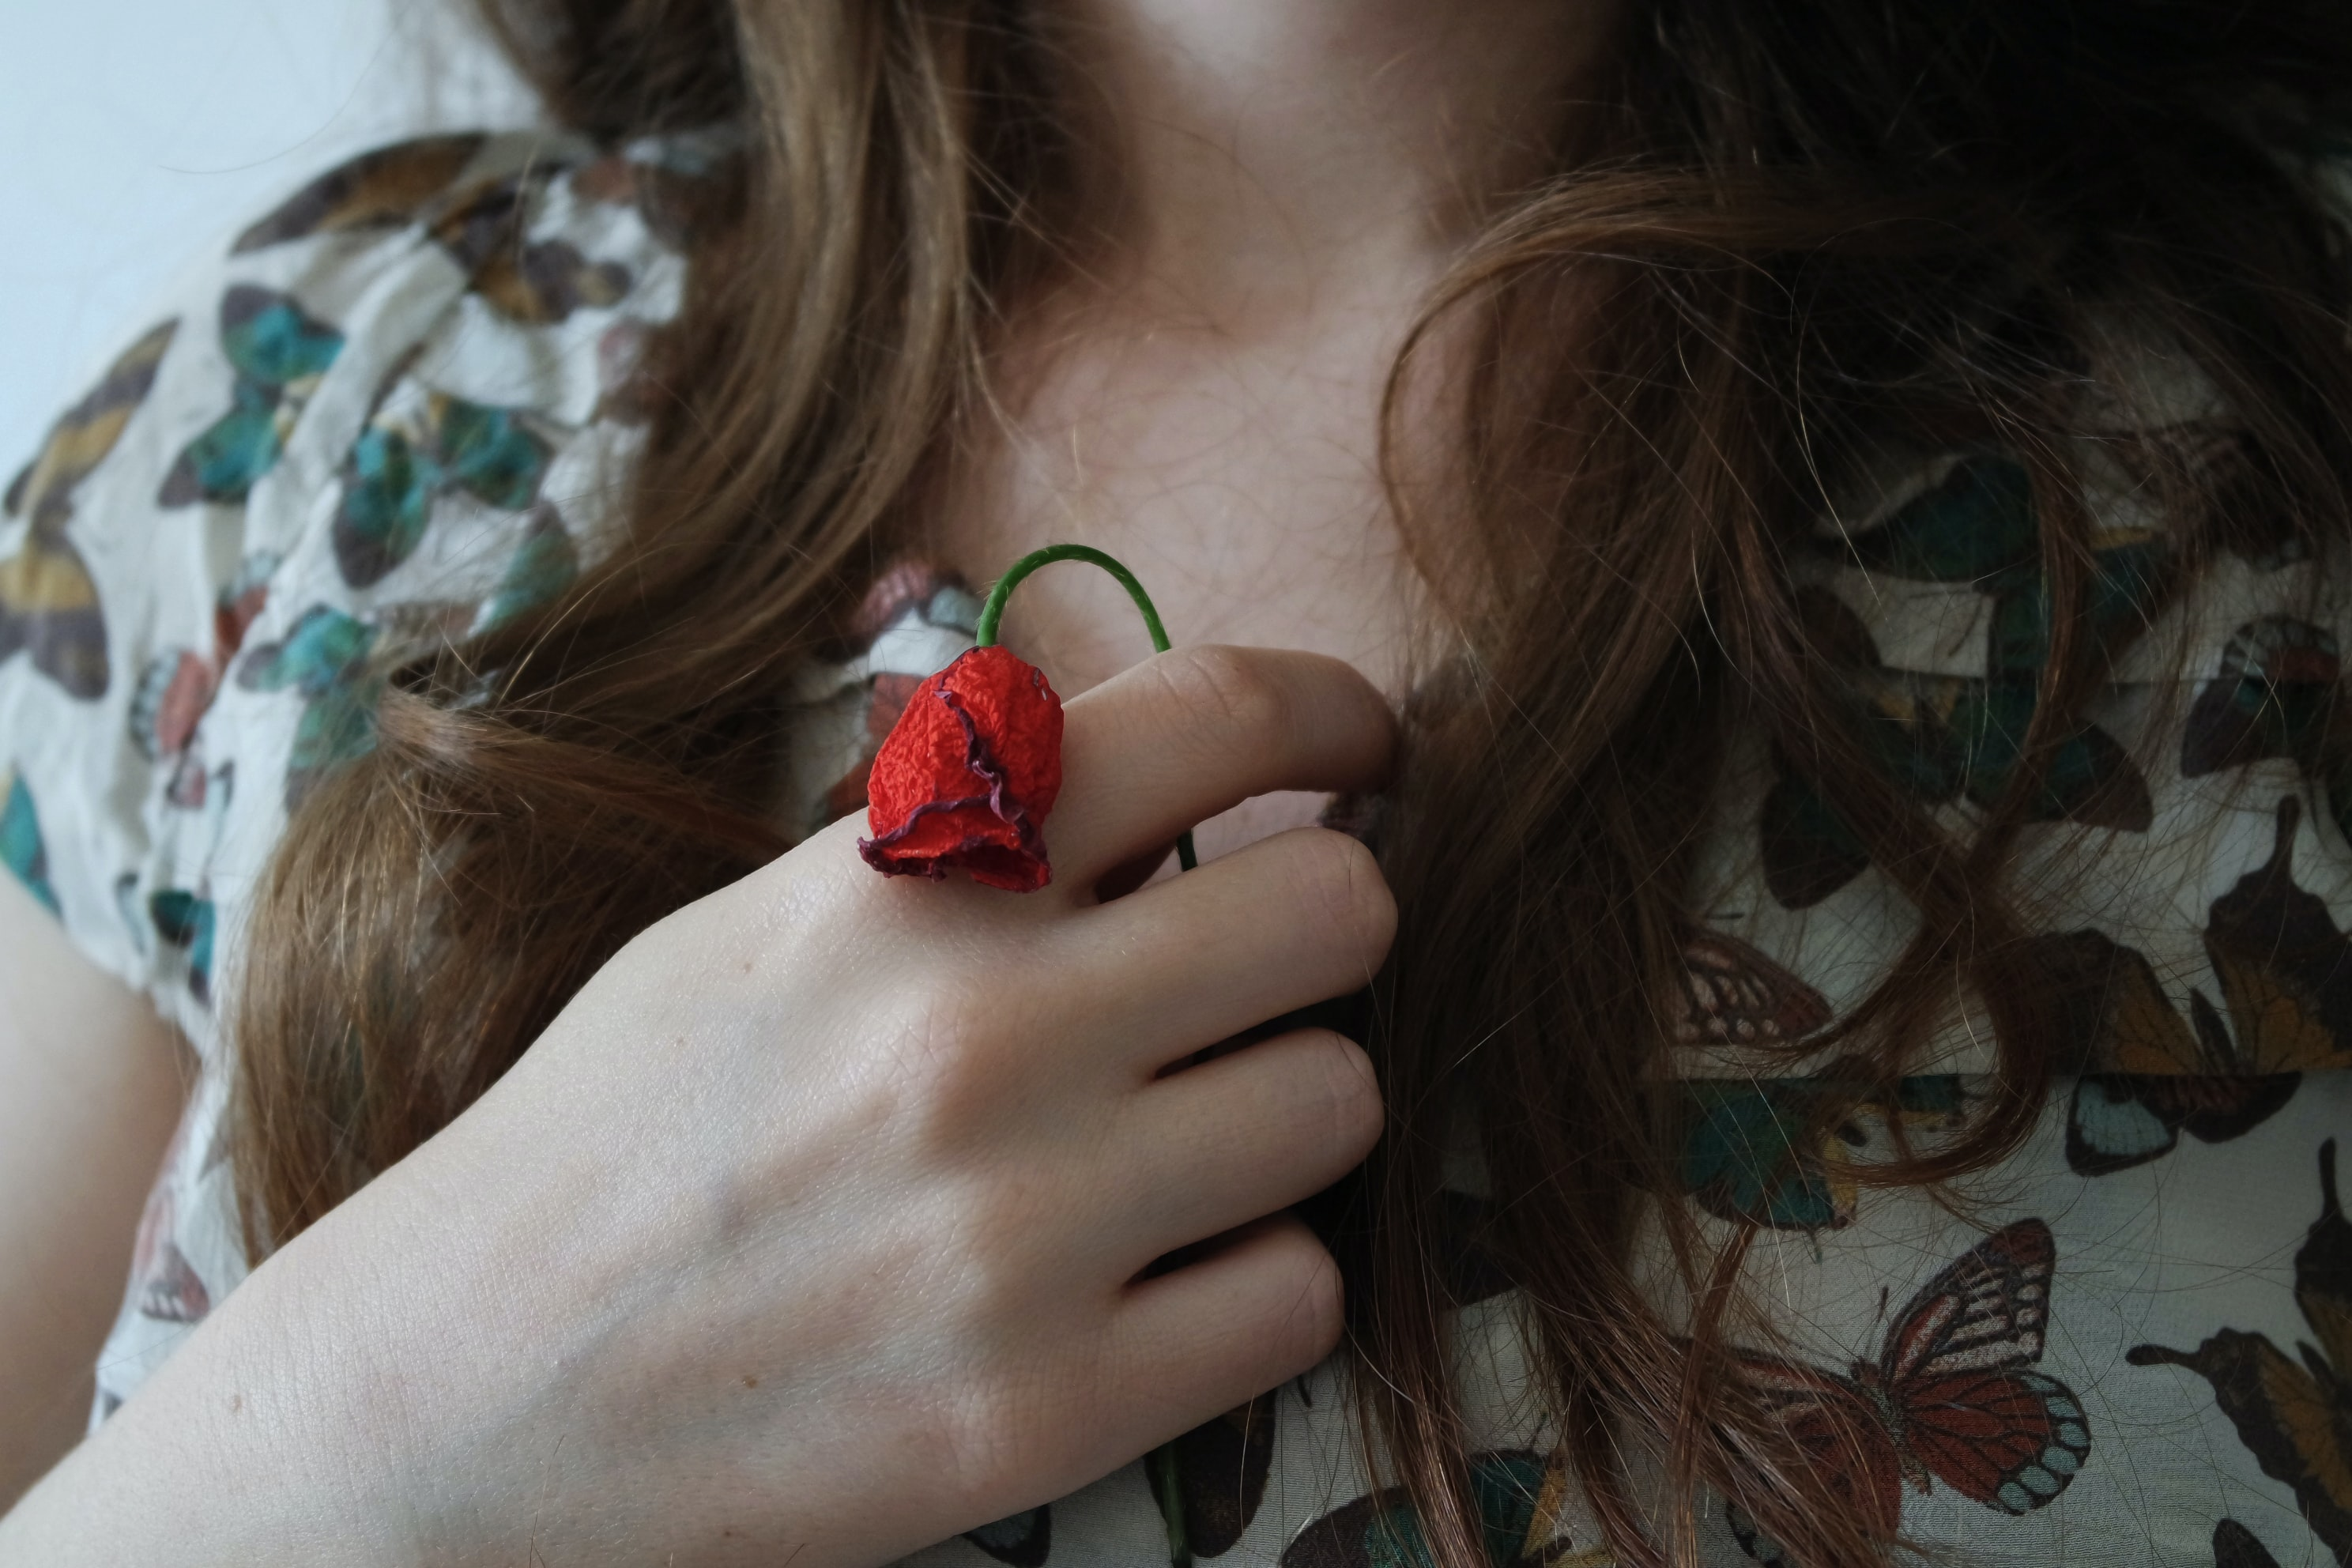 Young woman clutches a withered red rose to her heart